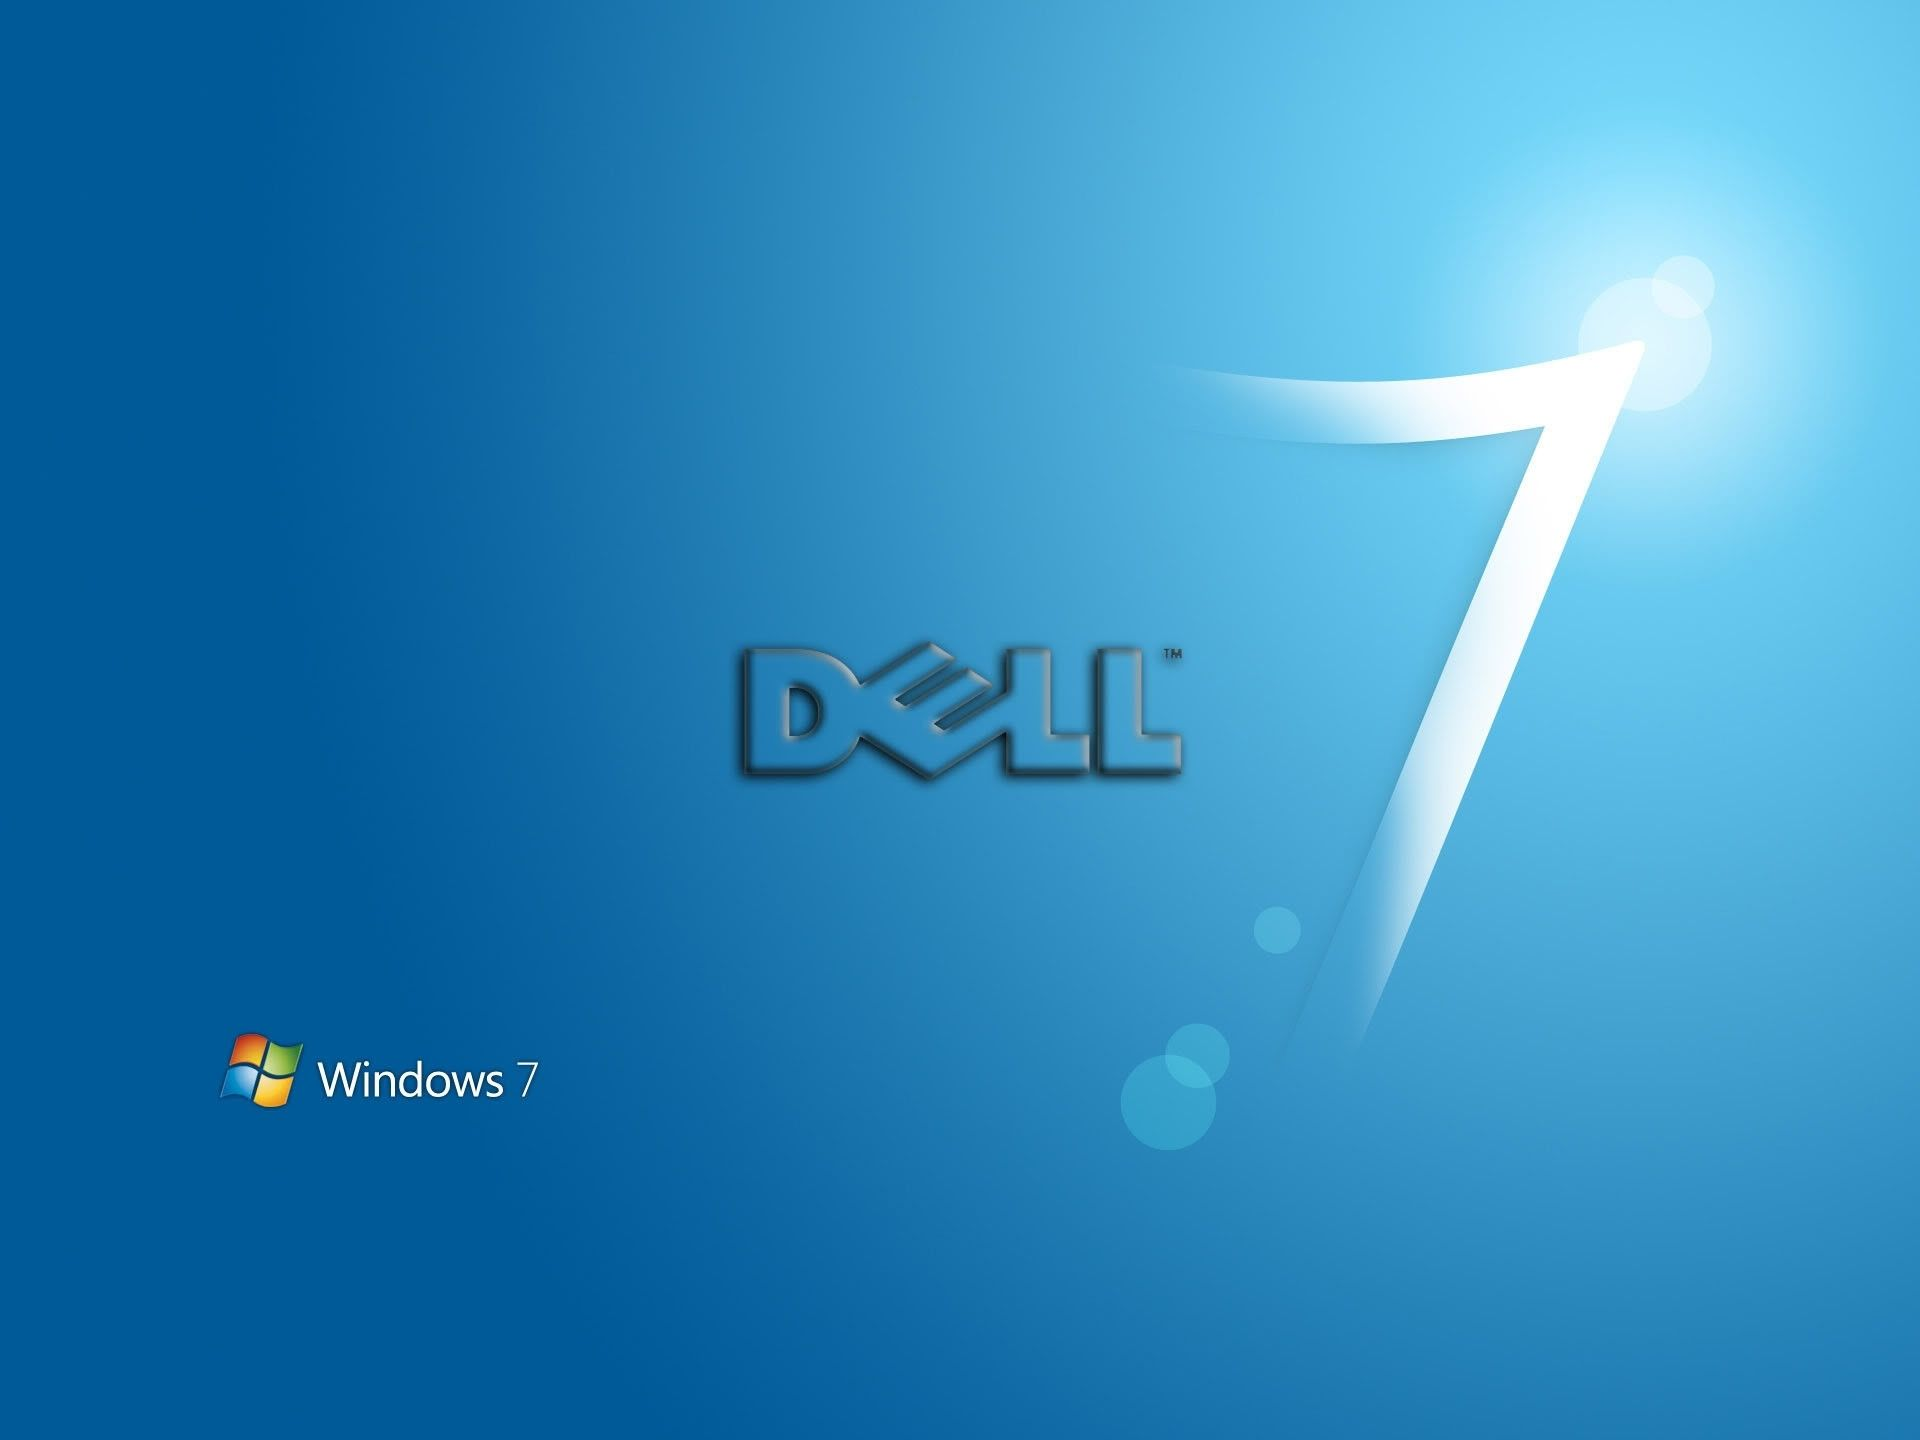 10 best dell windows 7 wallpaper full hd 1080p for pc background